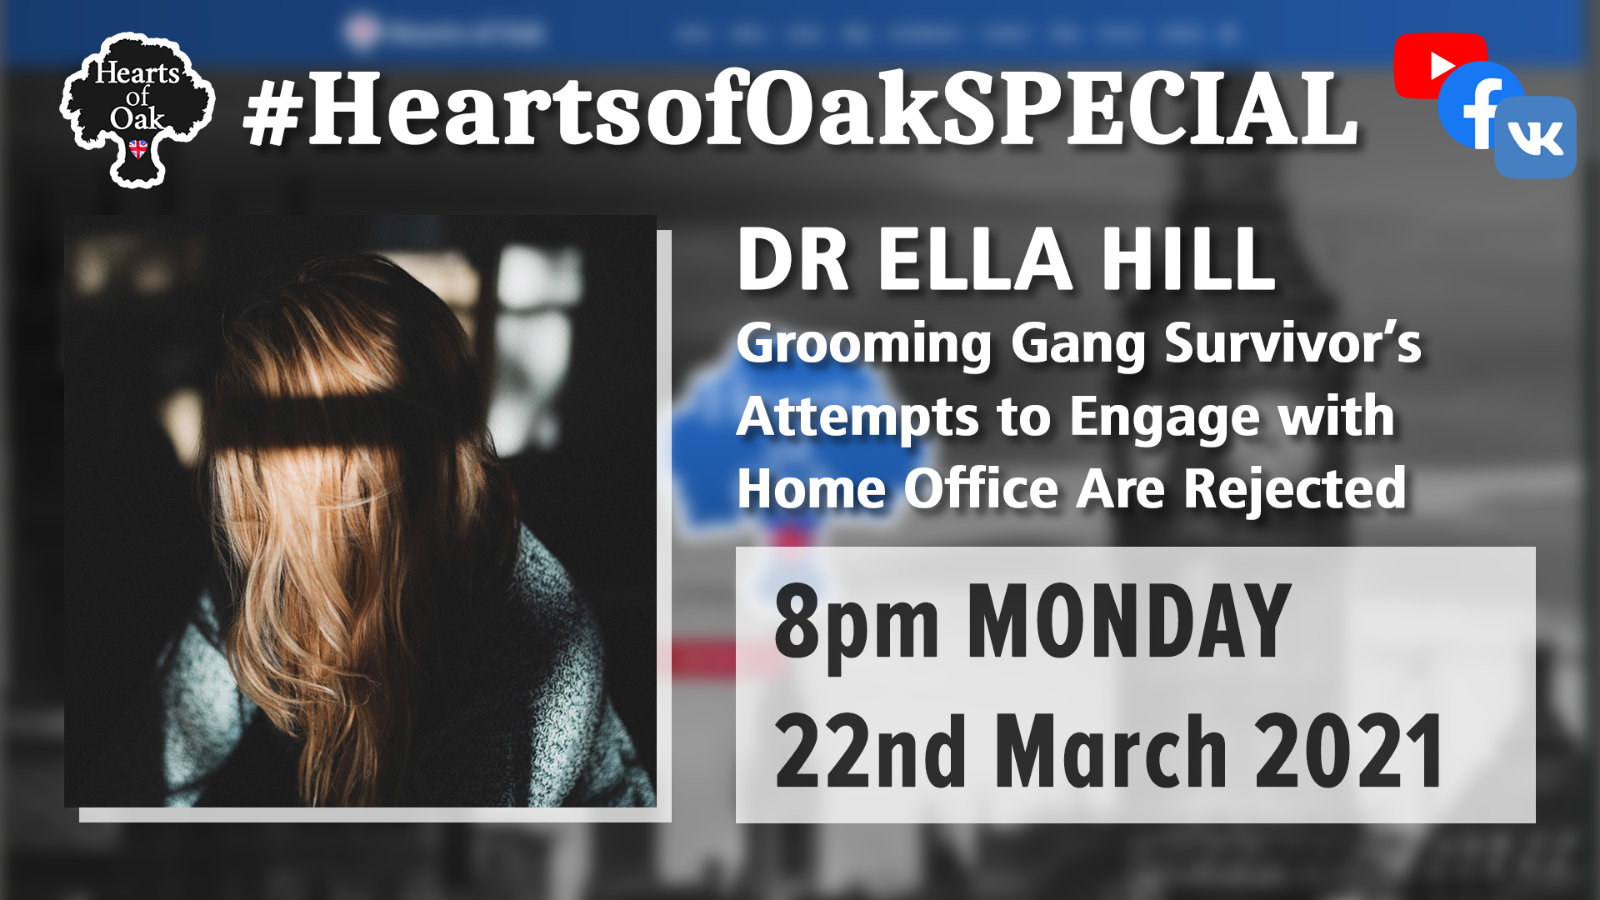 Dr Ella Hill: Grooming Gang Survivor's attempts to engage with the Home Office are rejected